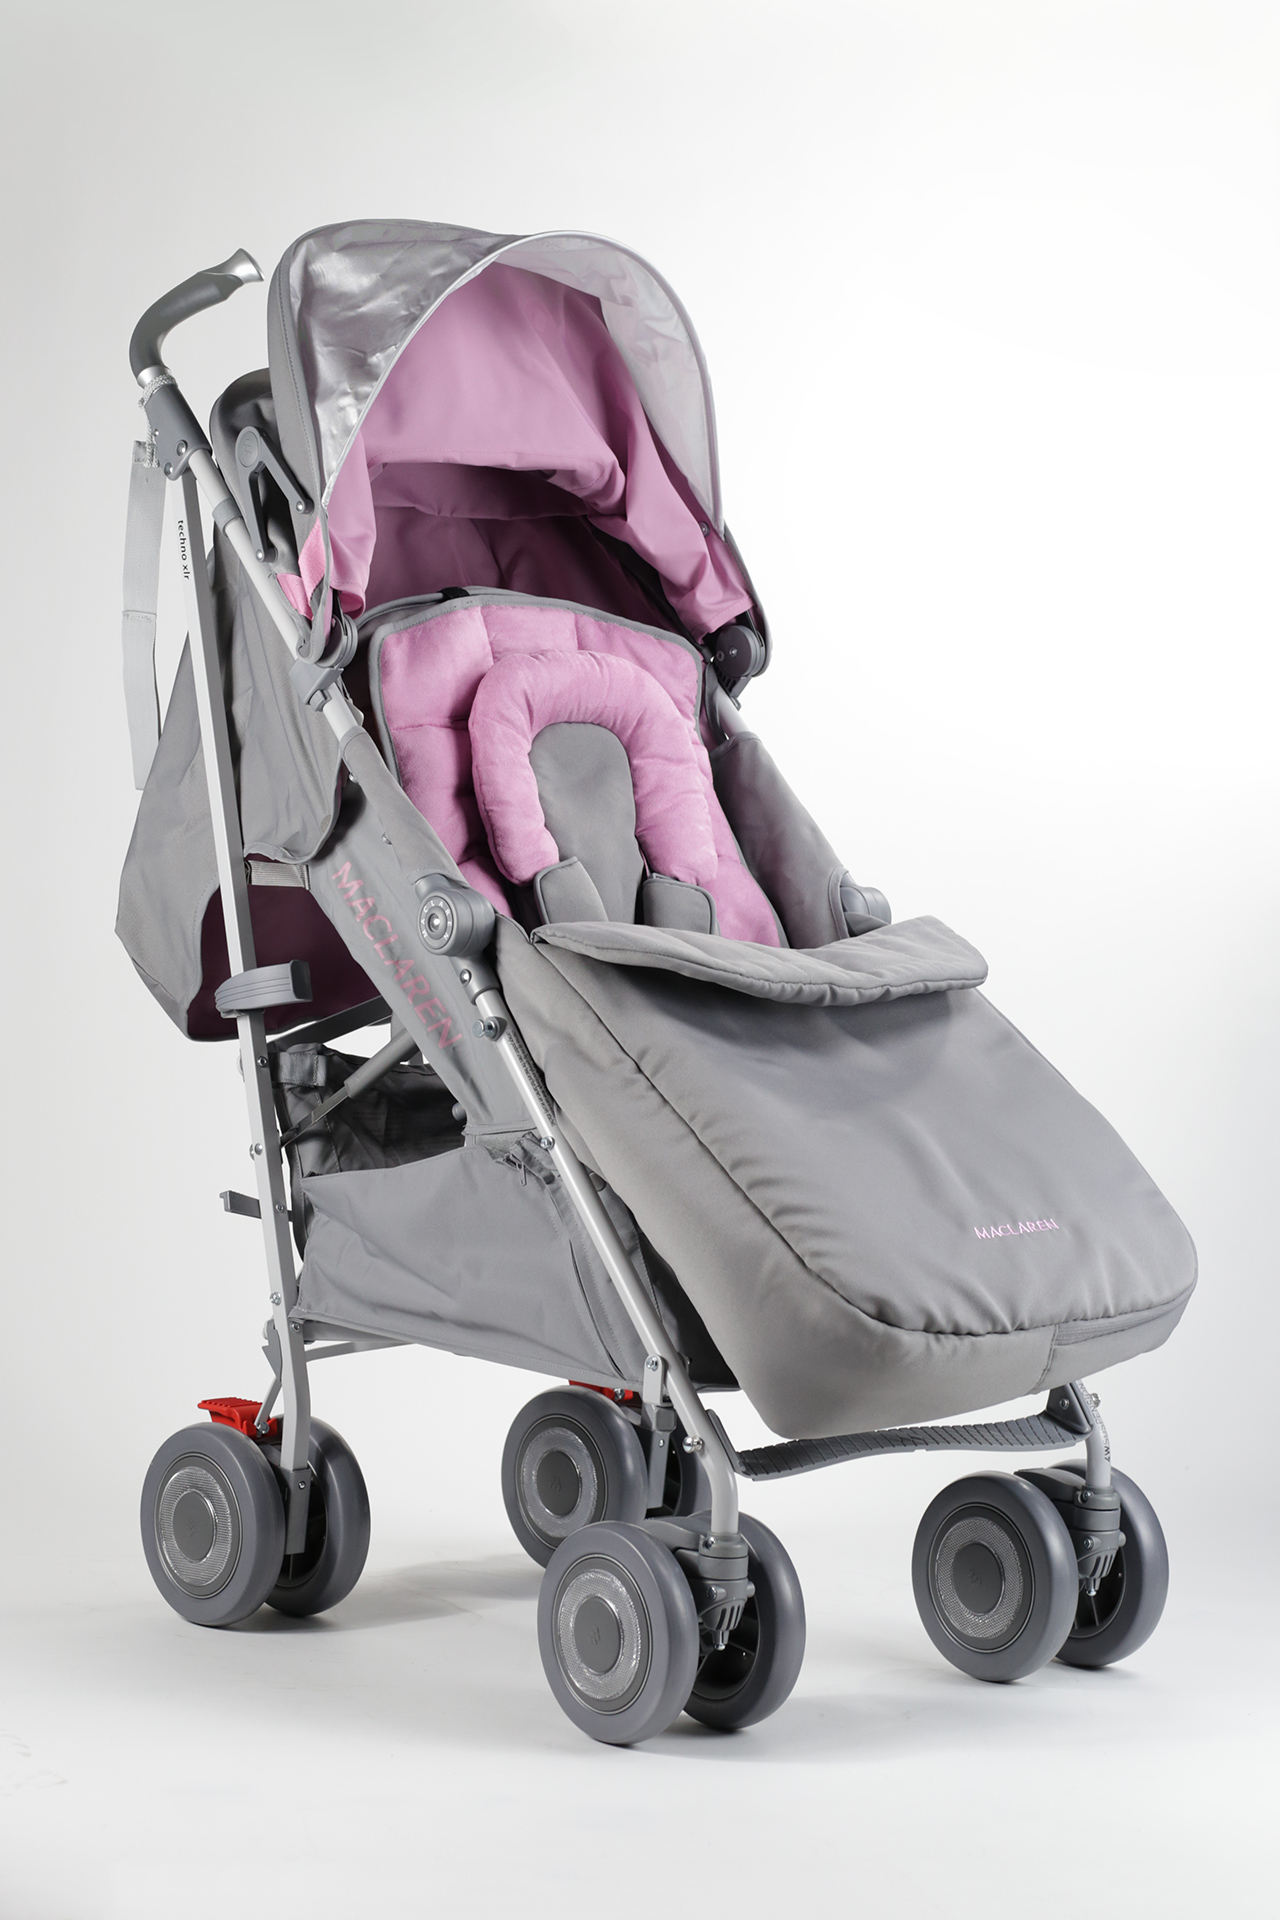 maclaren stroller techno xlr 2015 orchid smoke buy at kidsroom strollers. Black Bedroom Furniture Sets. Home Design Ideas